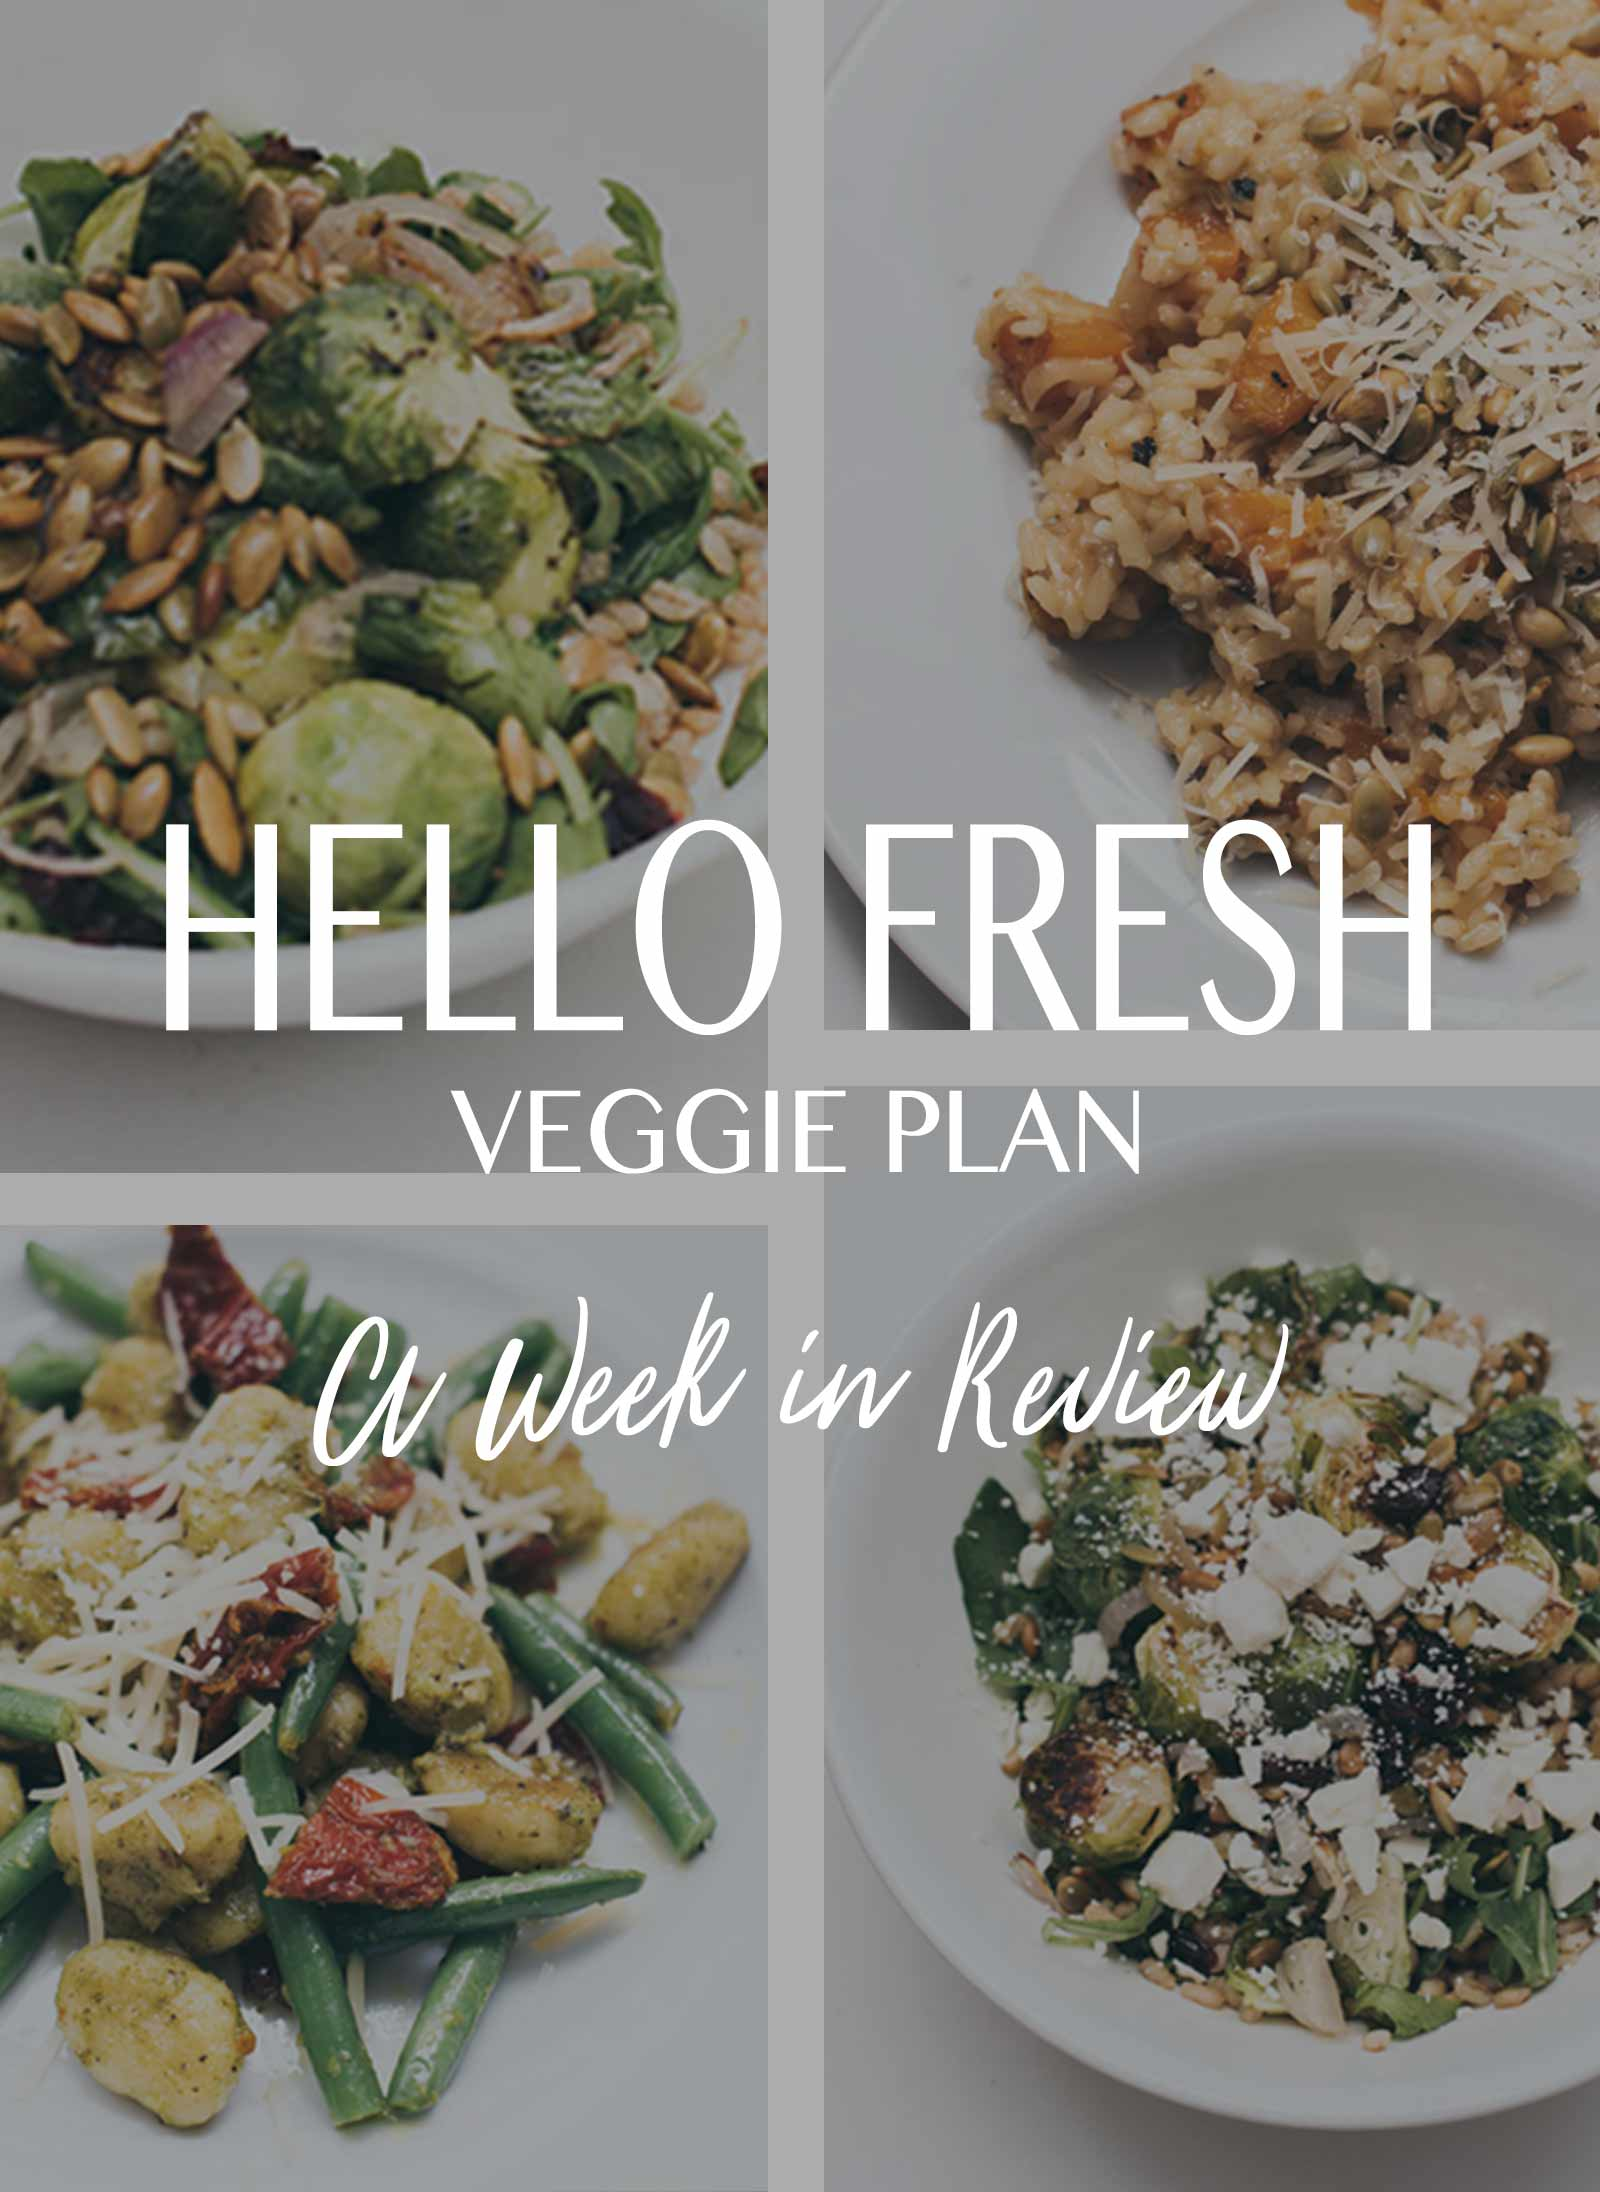 Hellofresh  Meal Kit Delivery Service Deals Today April